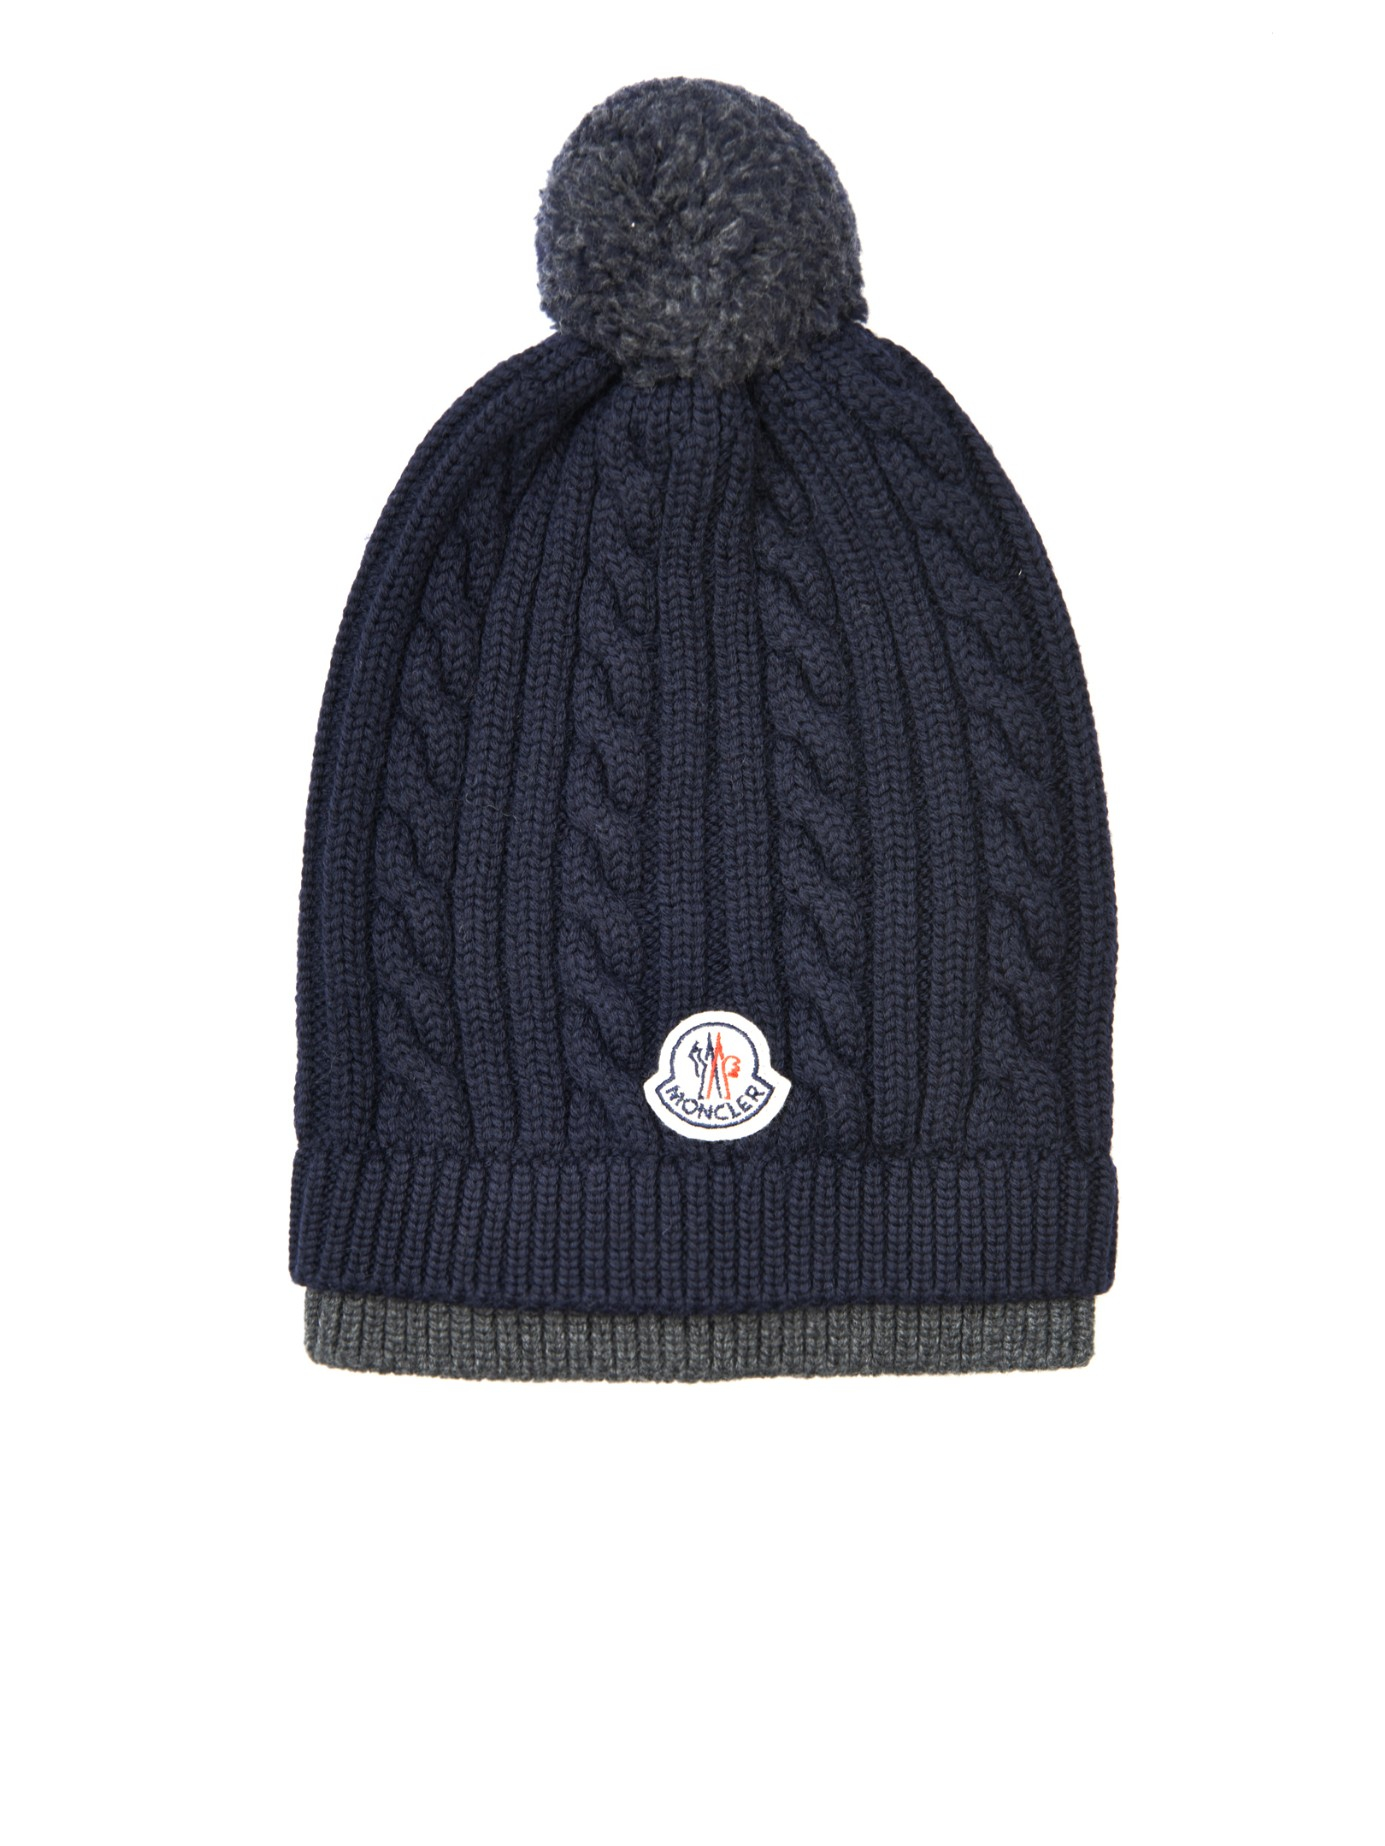 Plush Cable Knit Beanie. Moncler Cable-Knit Wool Beanie Hat in Blue for Men   b6c89e15e2c0